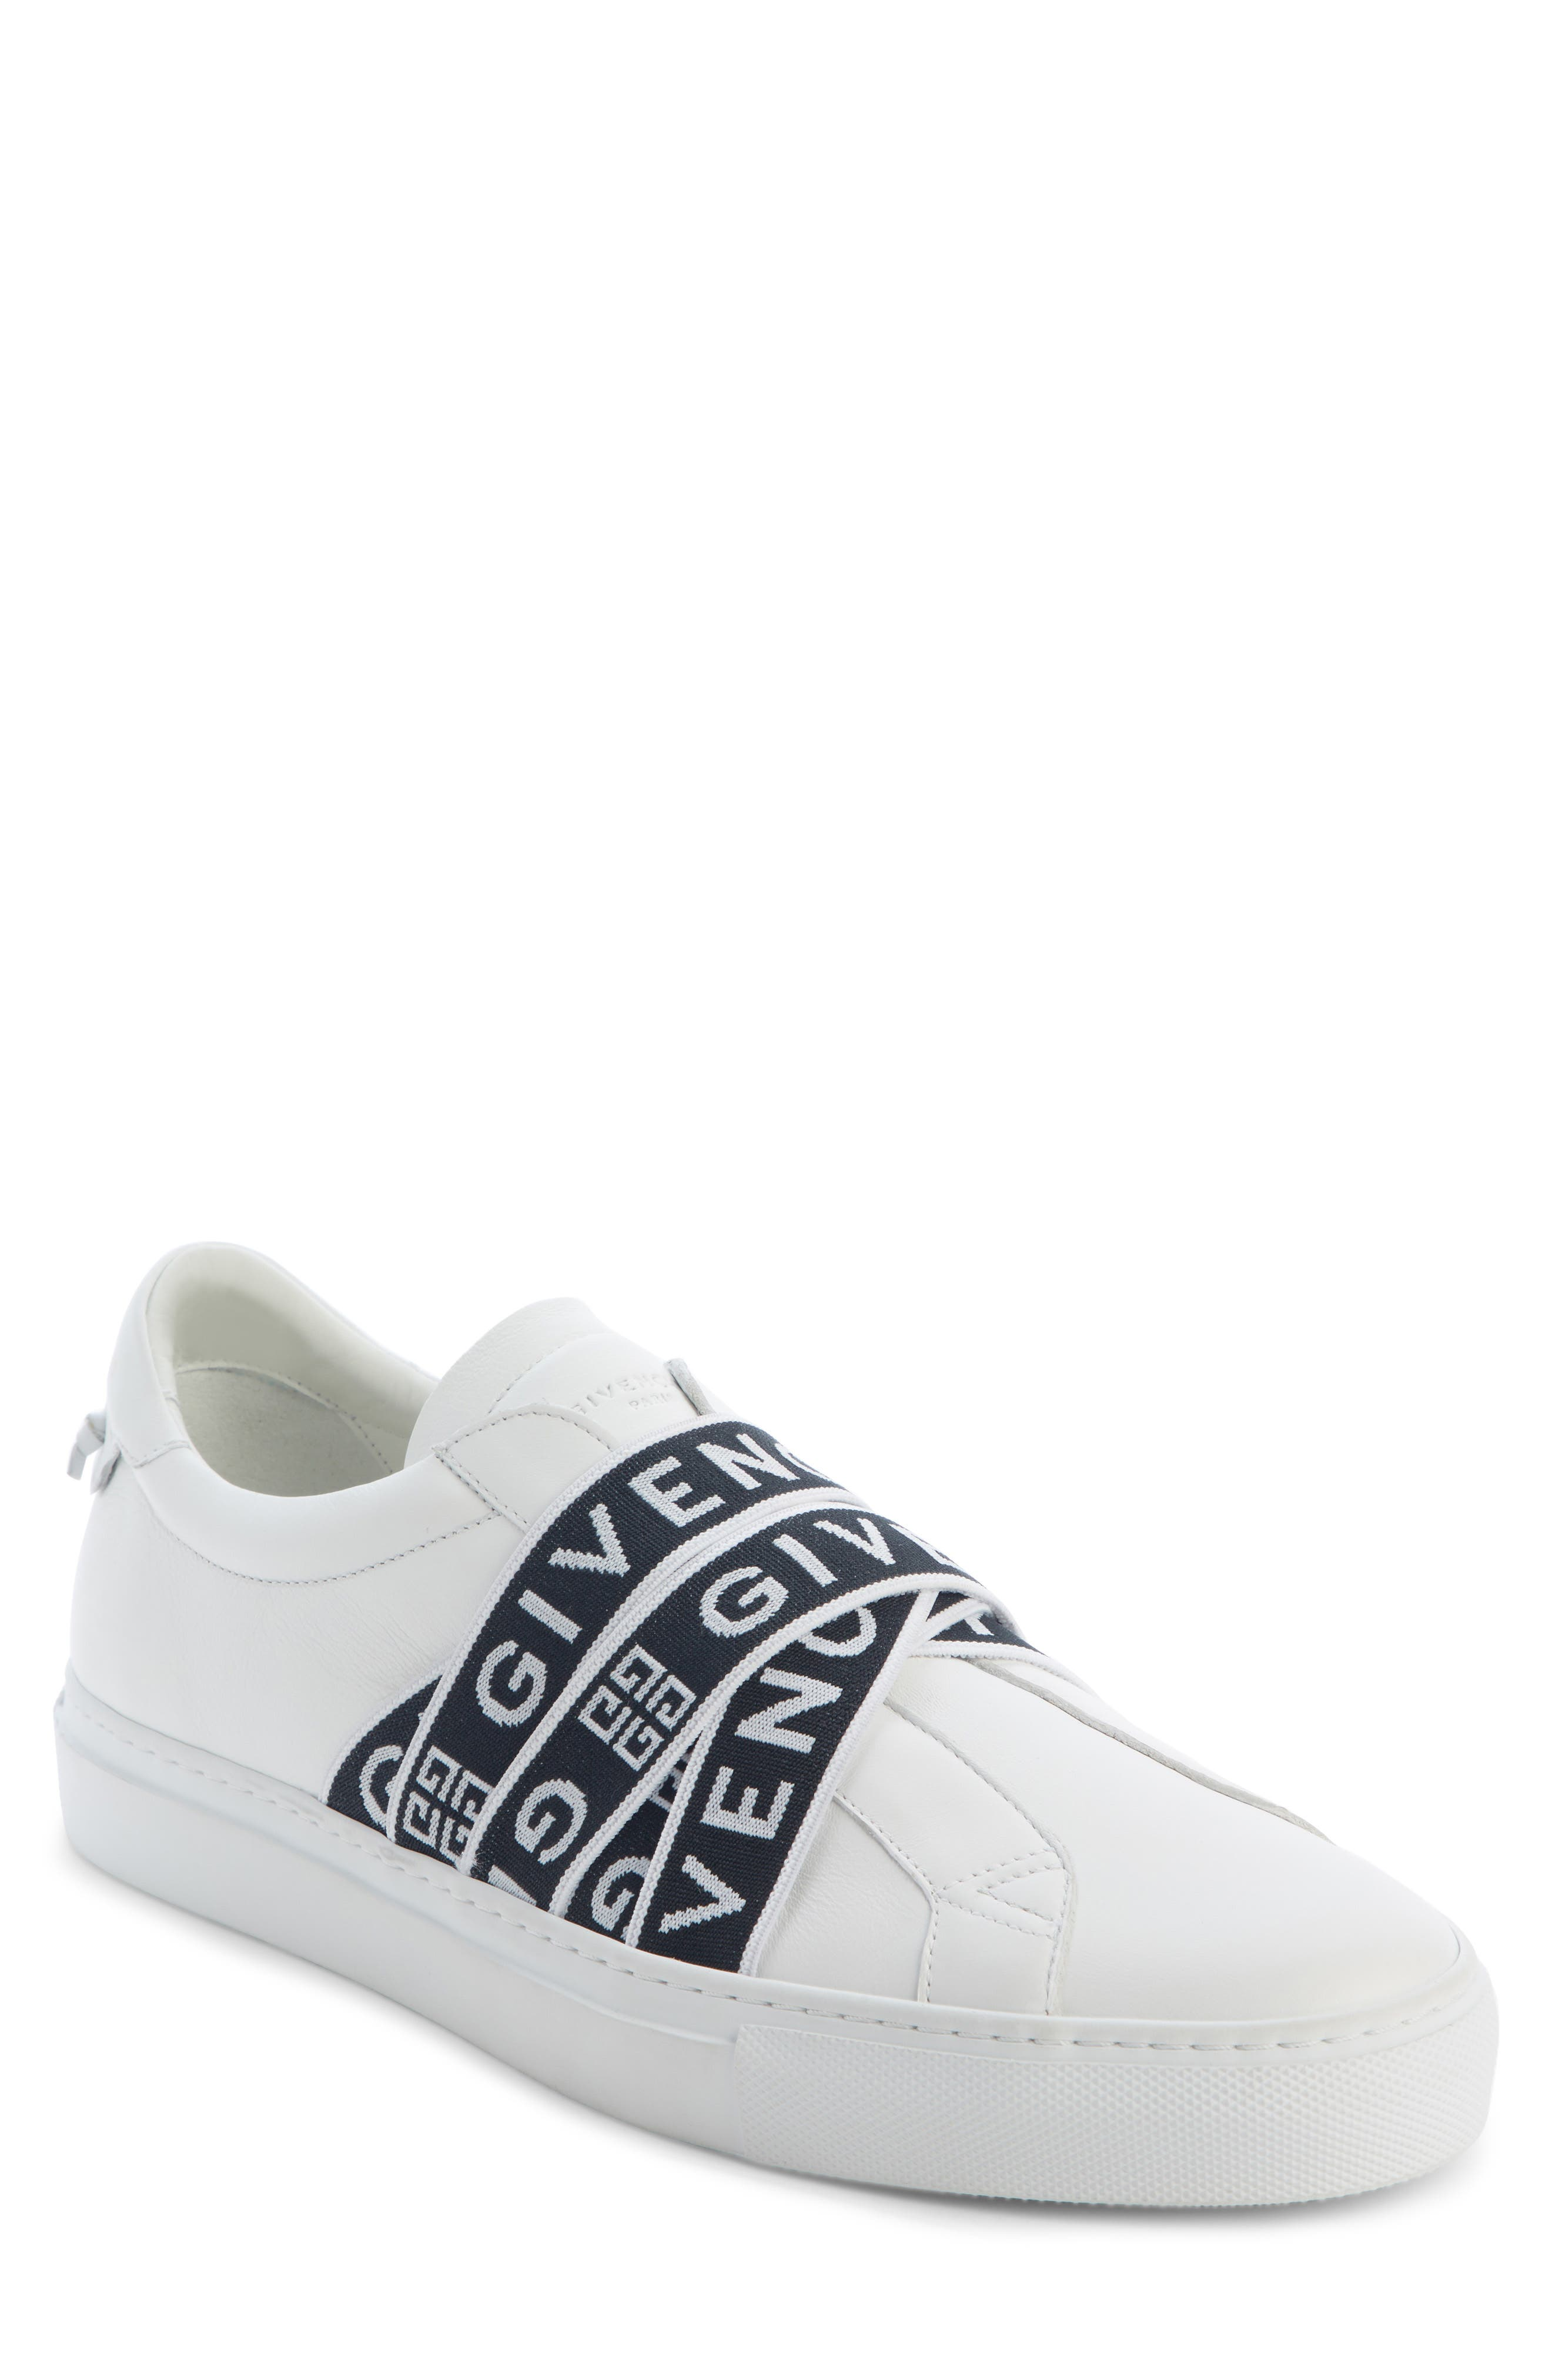 Urban Street Slip-On, Main, color, WHITE/ BLACK